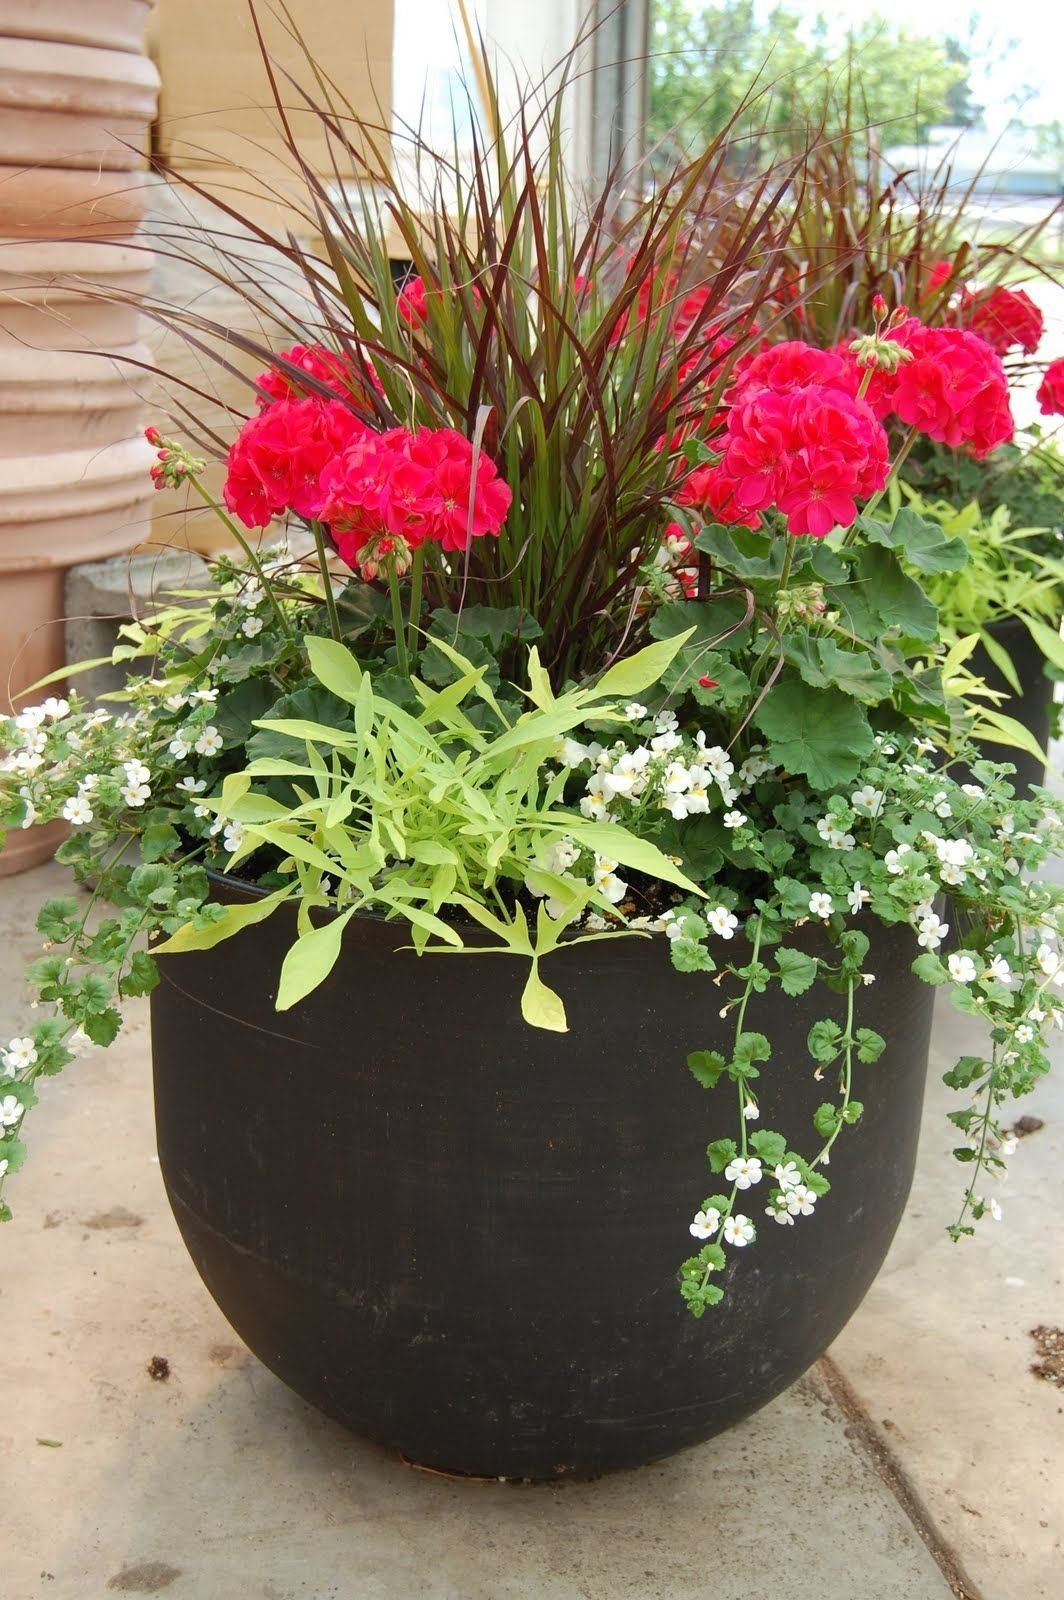 10 Nice Flower Pot Ideas For Patio images of potted plant ideas how to plant a patio pot container 2020